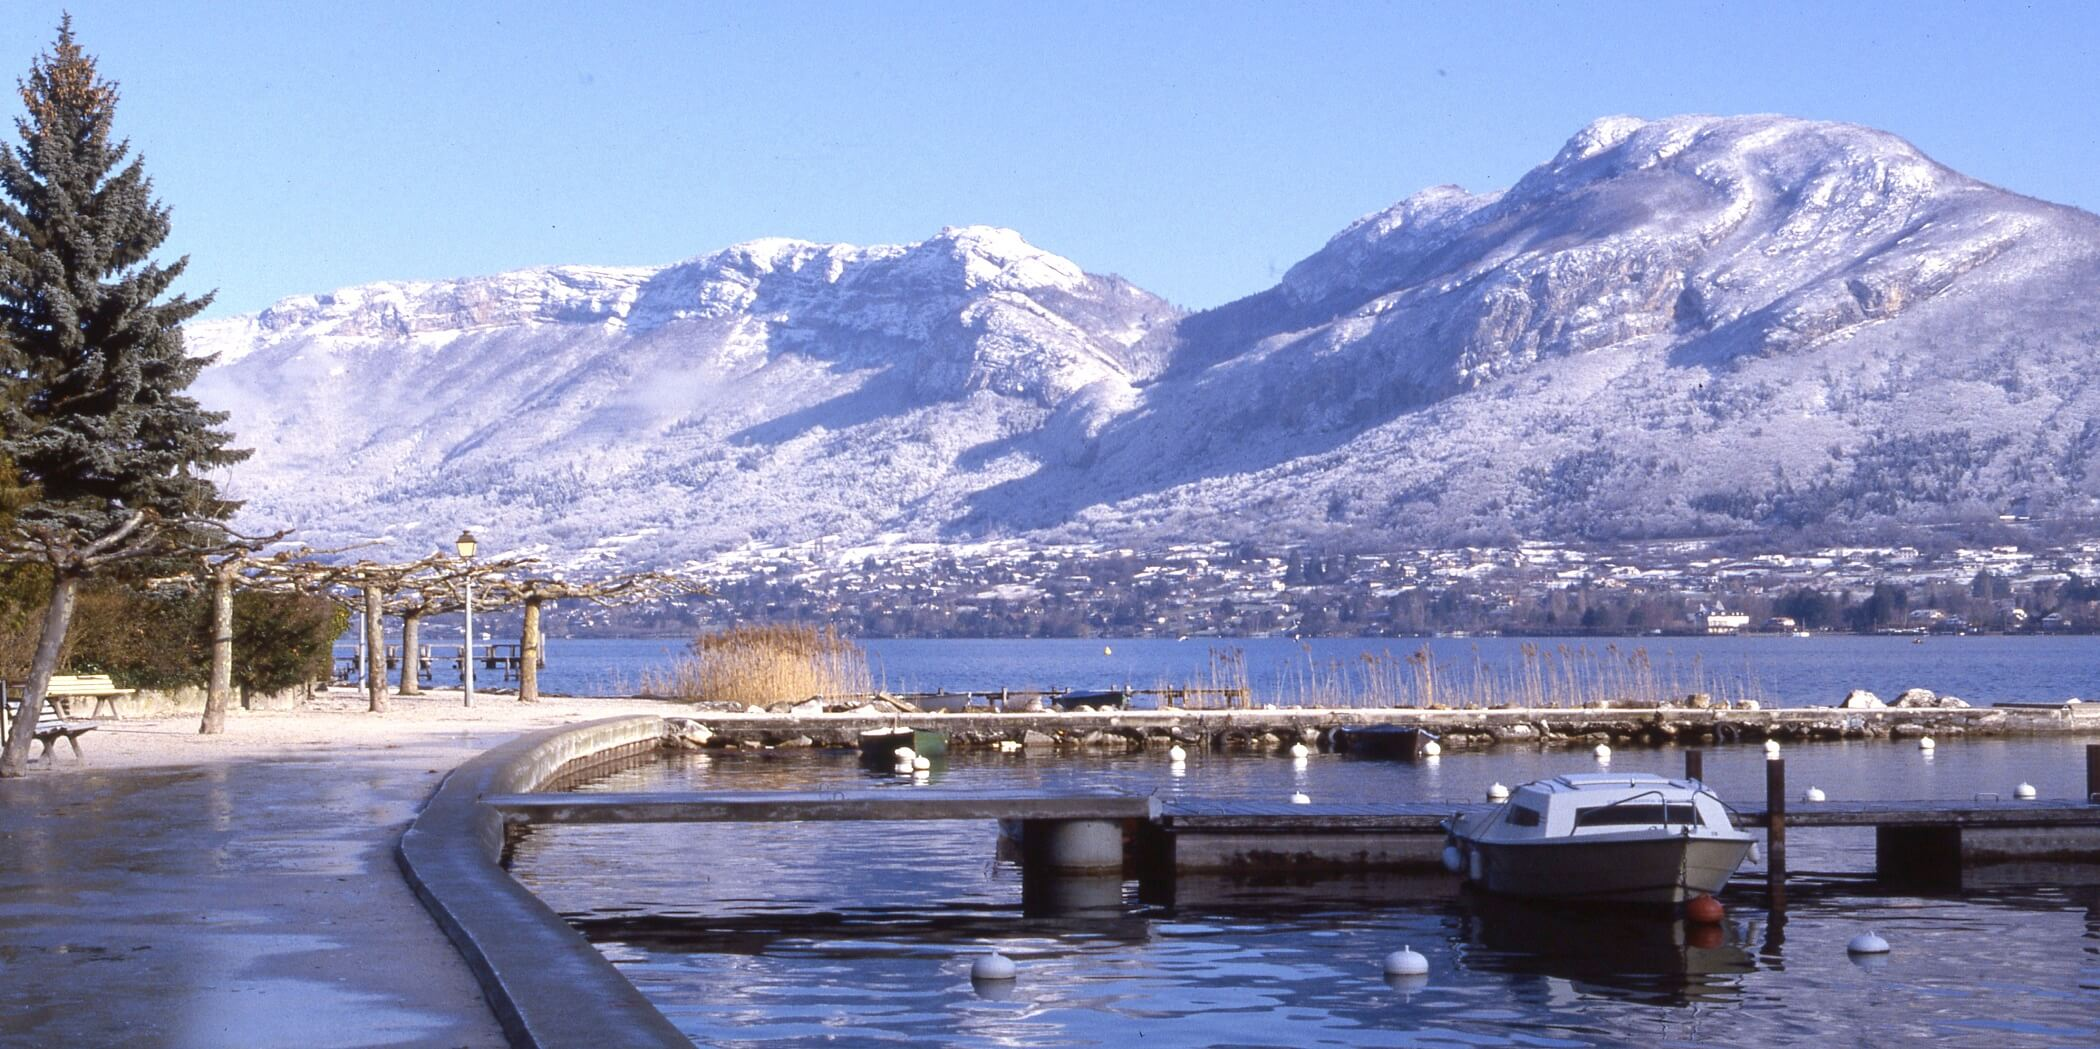 Hotel proche du lac d 39 annecy h tel des alpes for Hotel piscine annecy